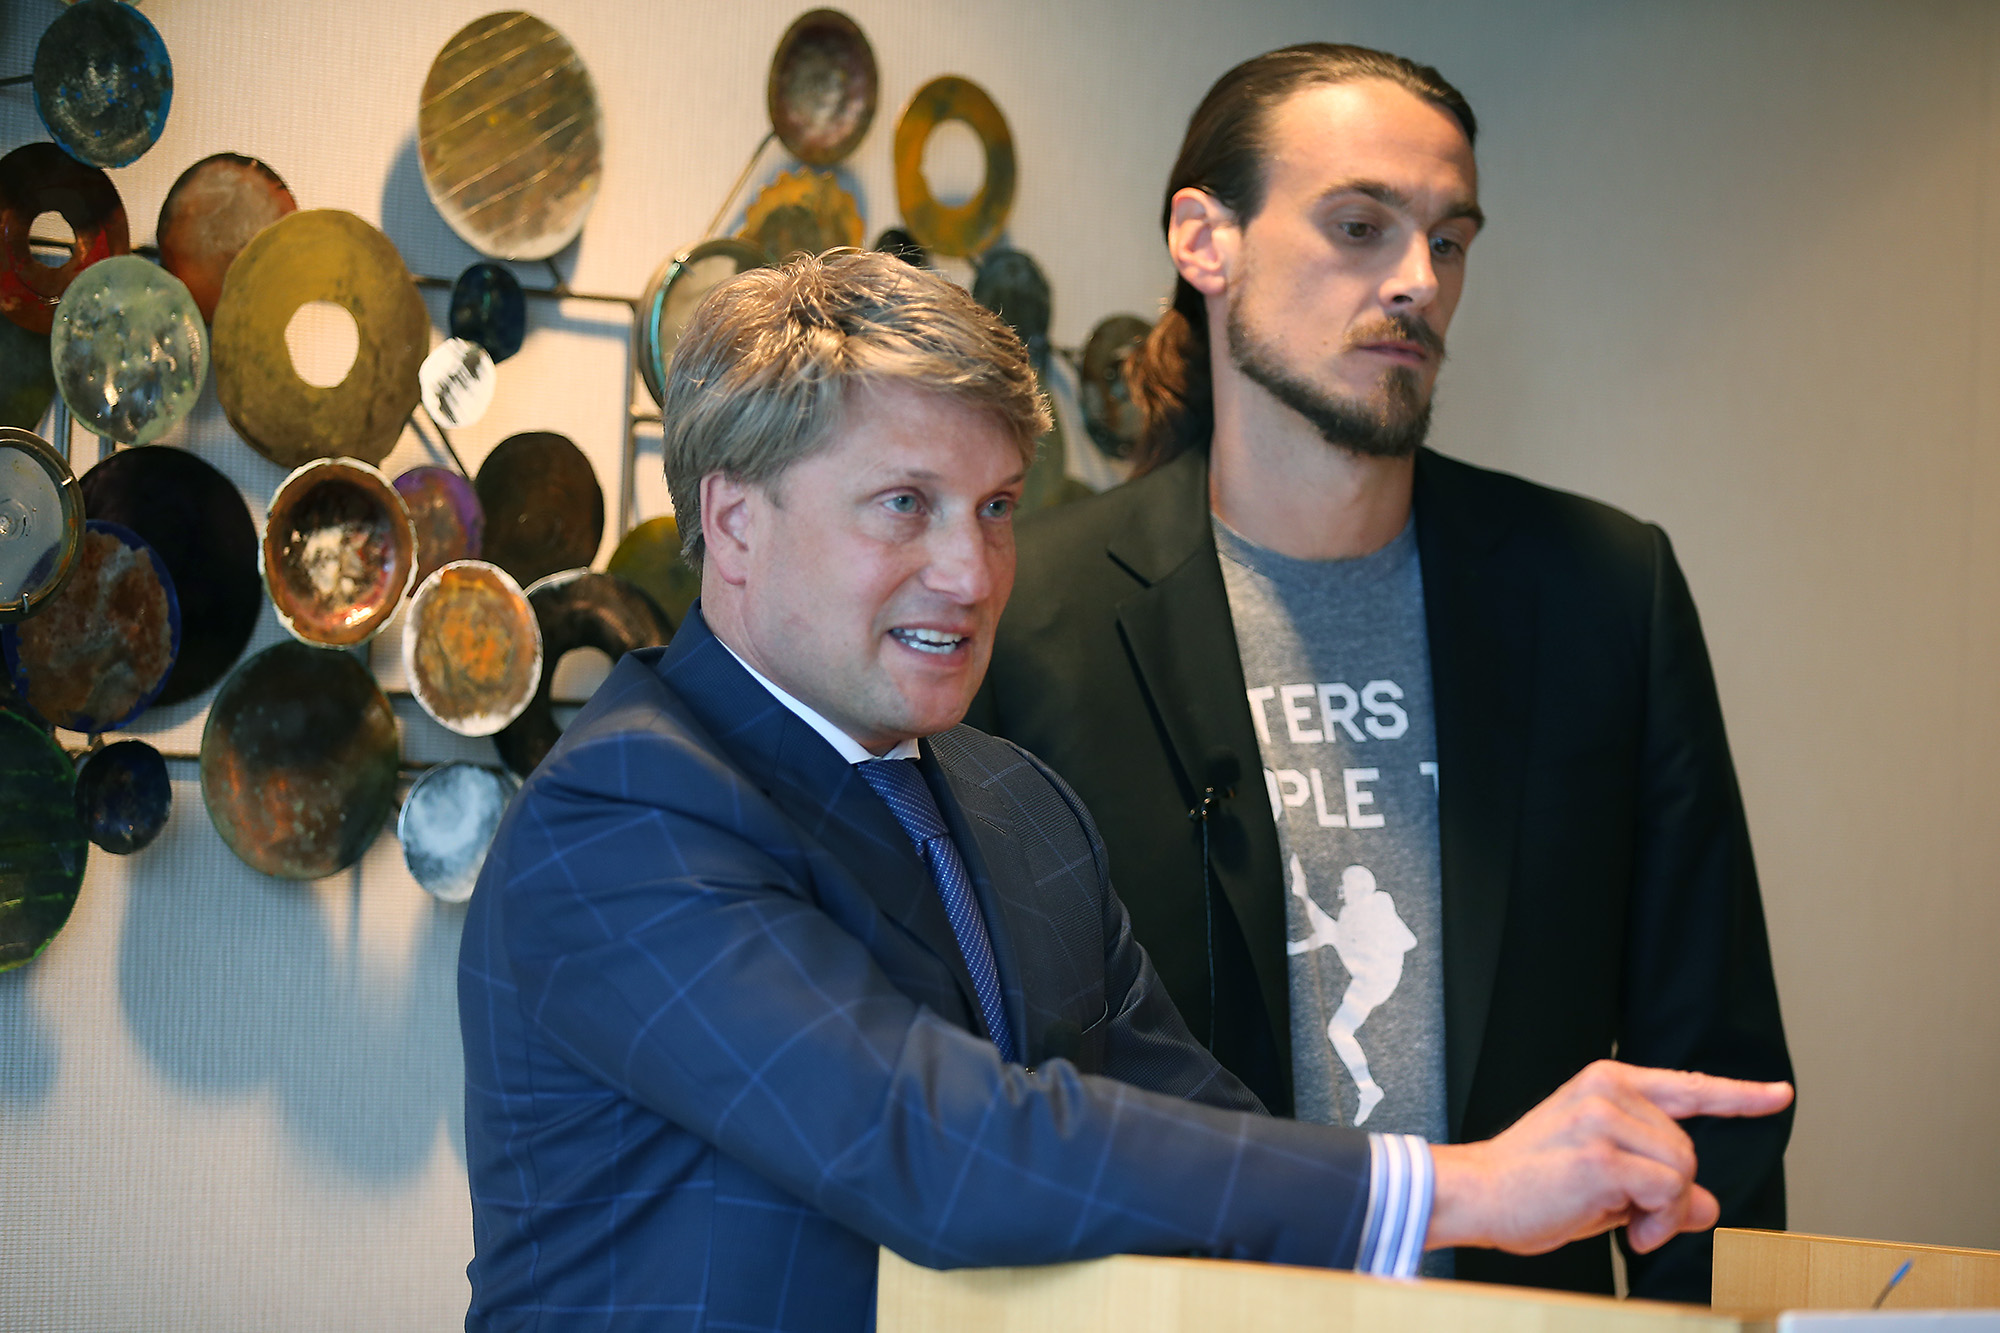 Former Minnesota Vikings punter Chris Kluwe, right, and his attorney Clayton Halunen speak during a press conference, Tuesday, July 15, 2014 in Minneapolis. Former Minnesota Vikings punter Chris Kluwe intends to sue the team over allegations of anti-gay conduct by a coach, his lawyer said Tuesday